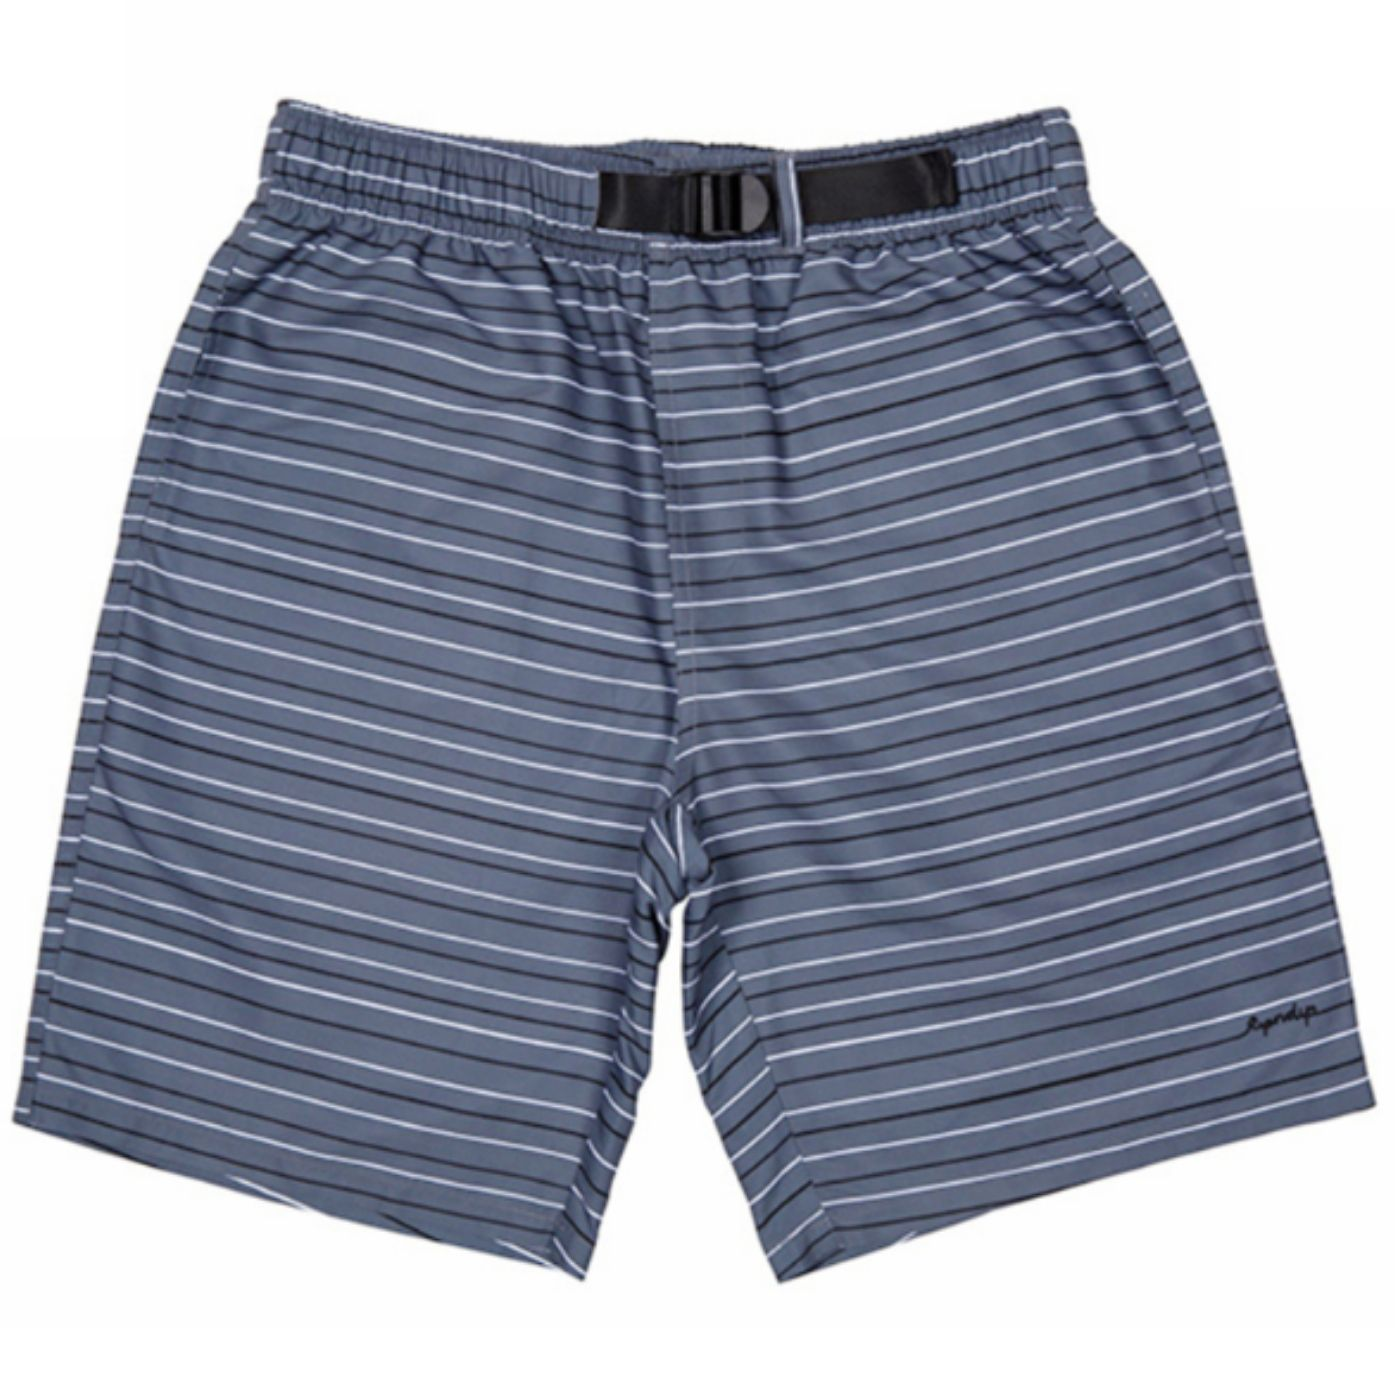 Peeking Nerm Nylon Boardshorts Grey/ Black/ White